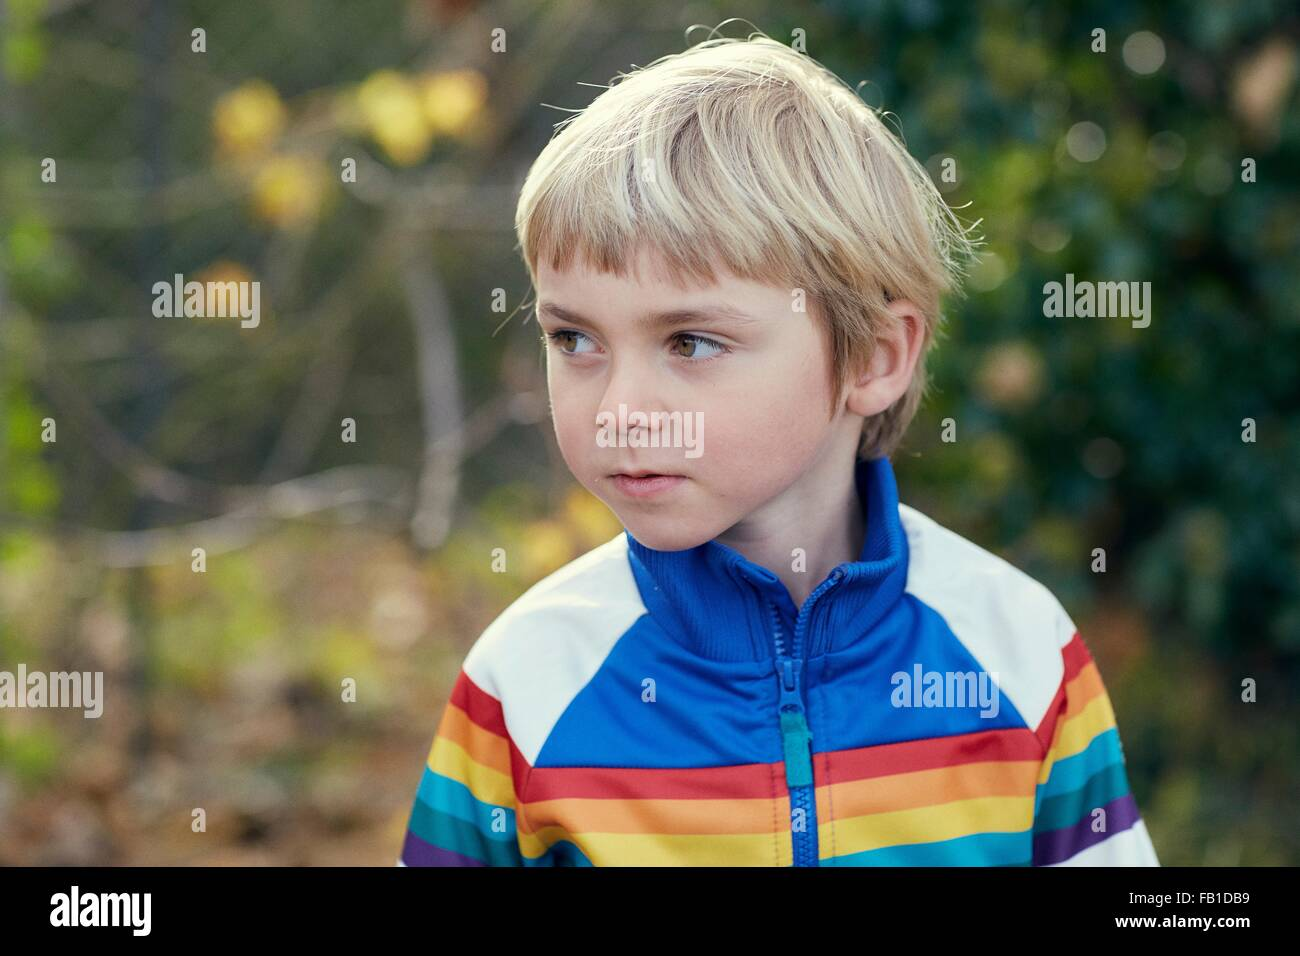 Head and shoulder portrait of boy looking away - Stock Image